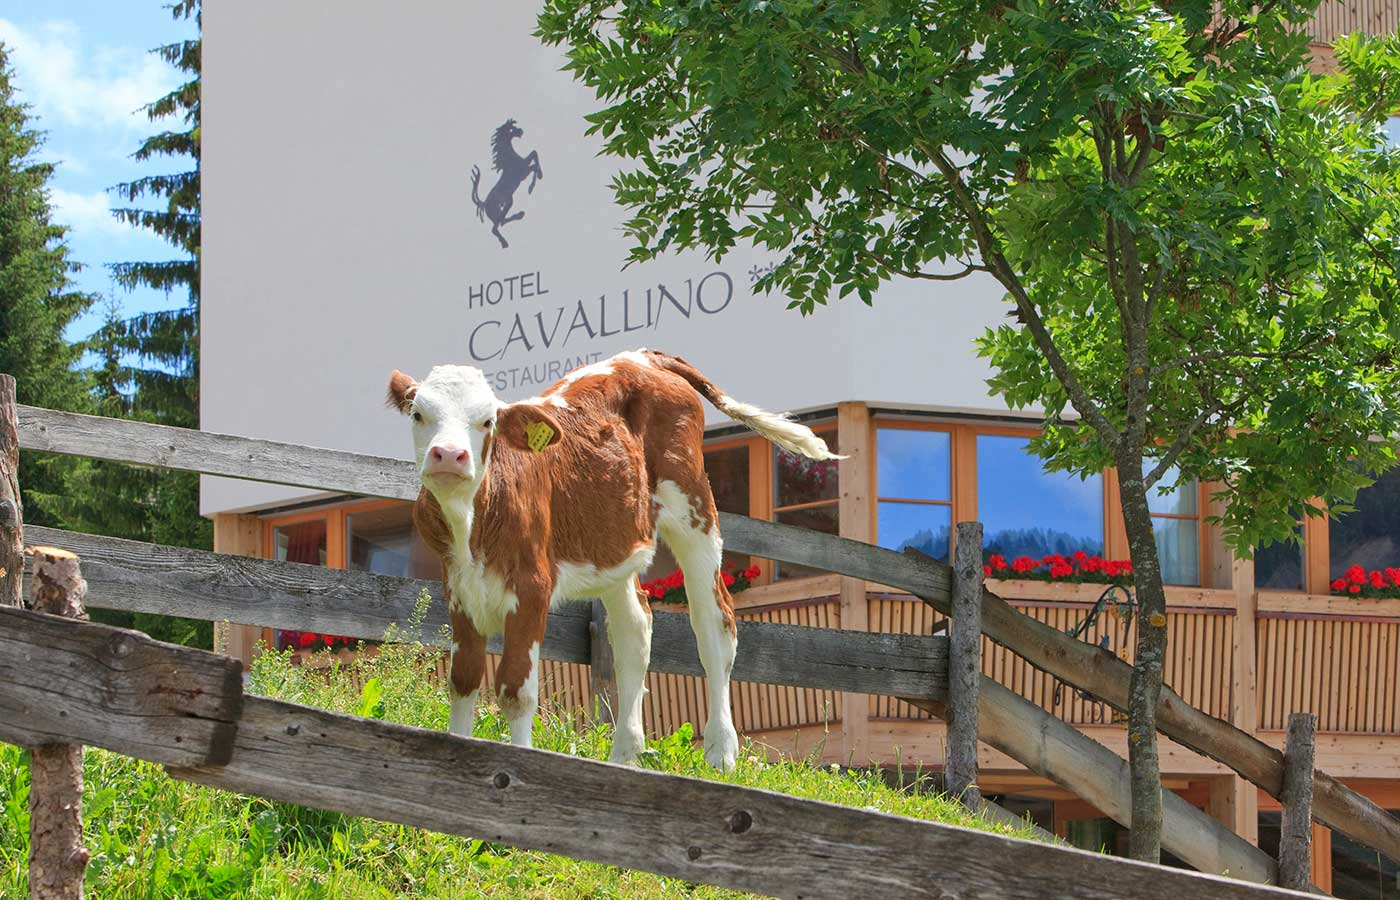 Little calf on the meadow in front of Hotel Cavallino